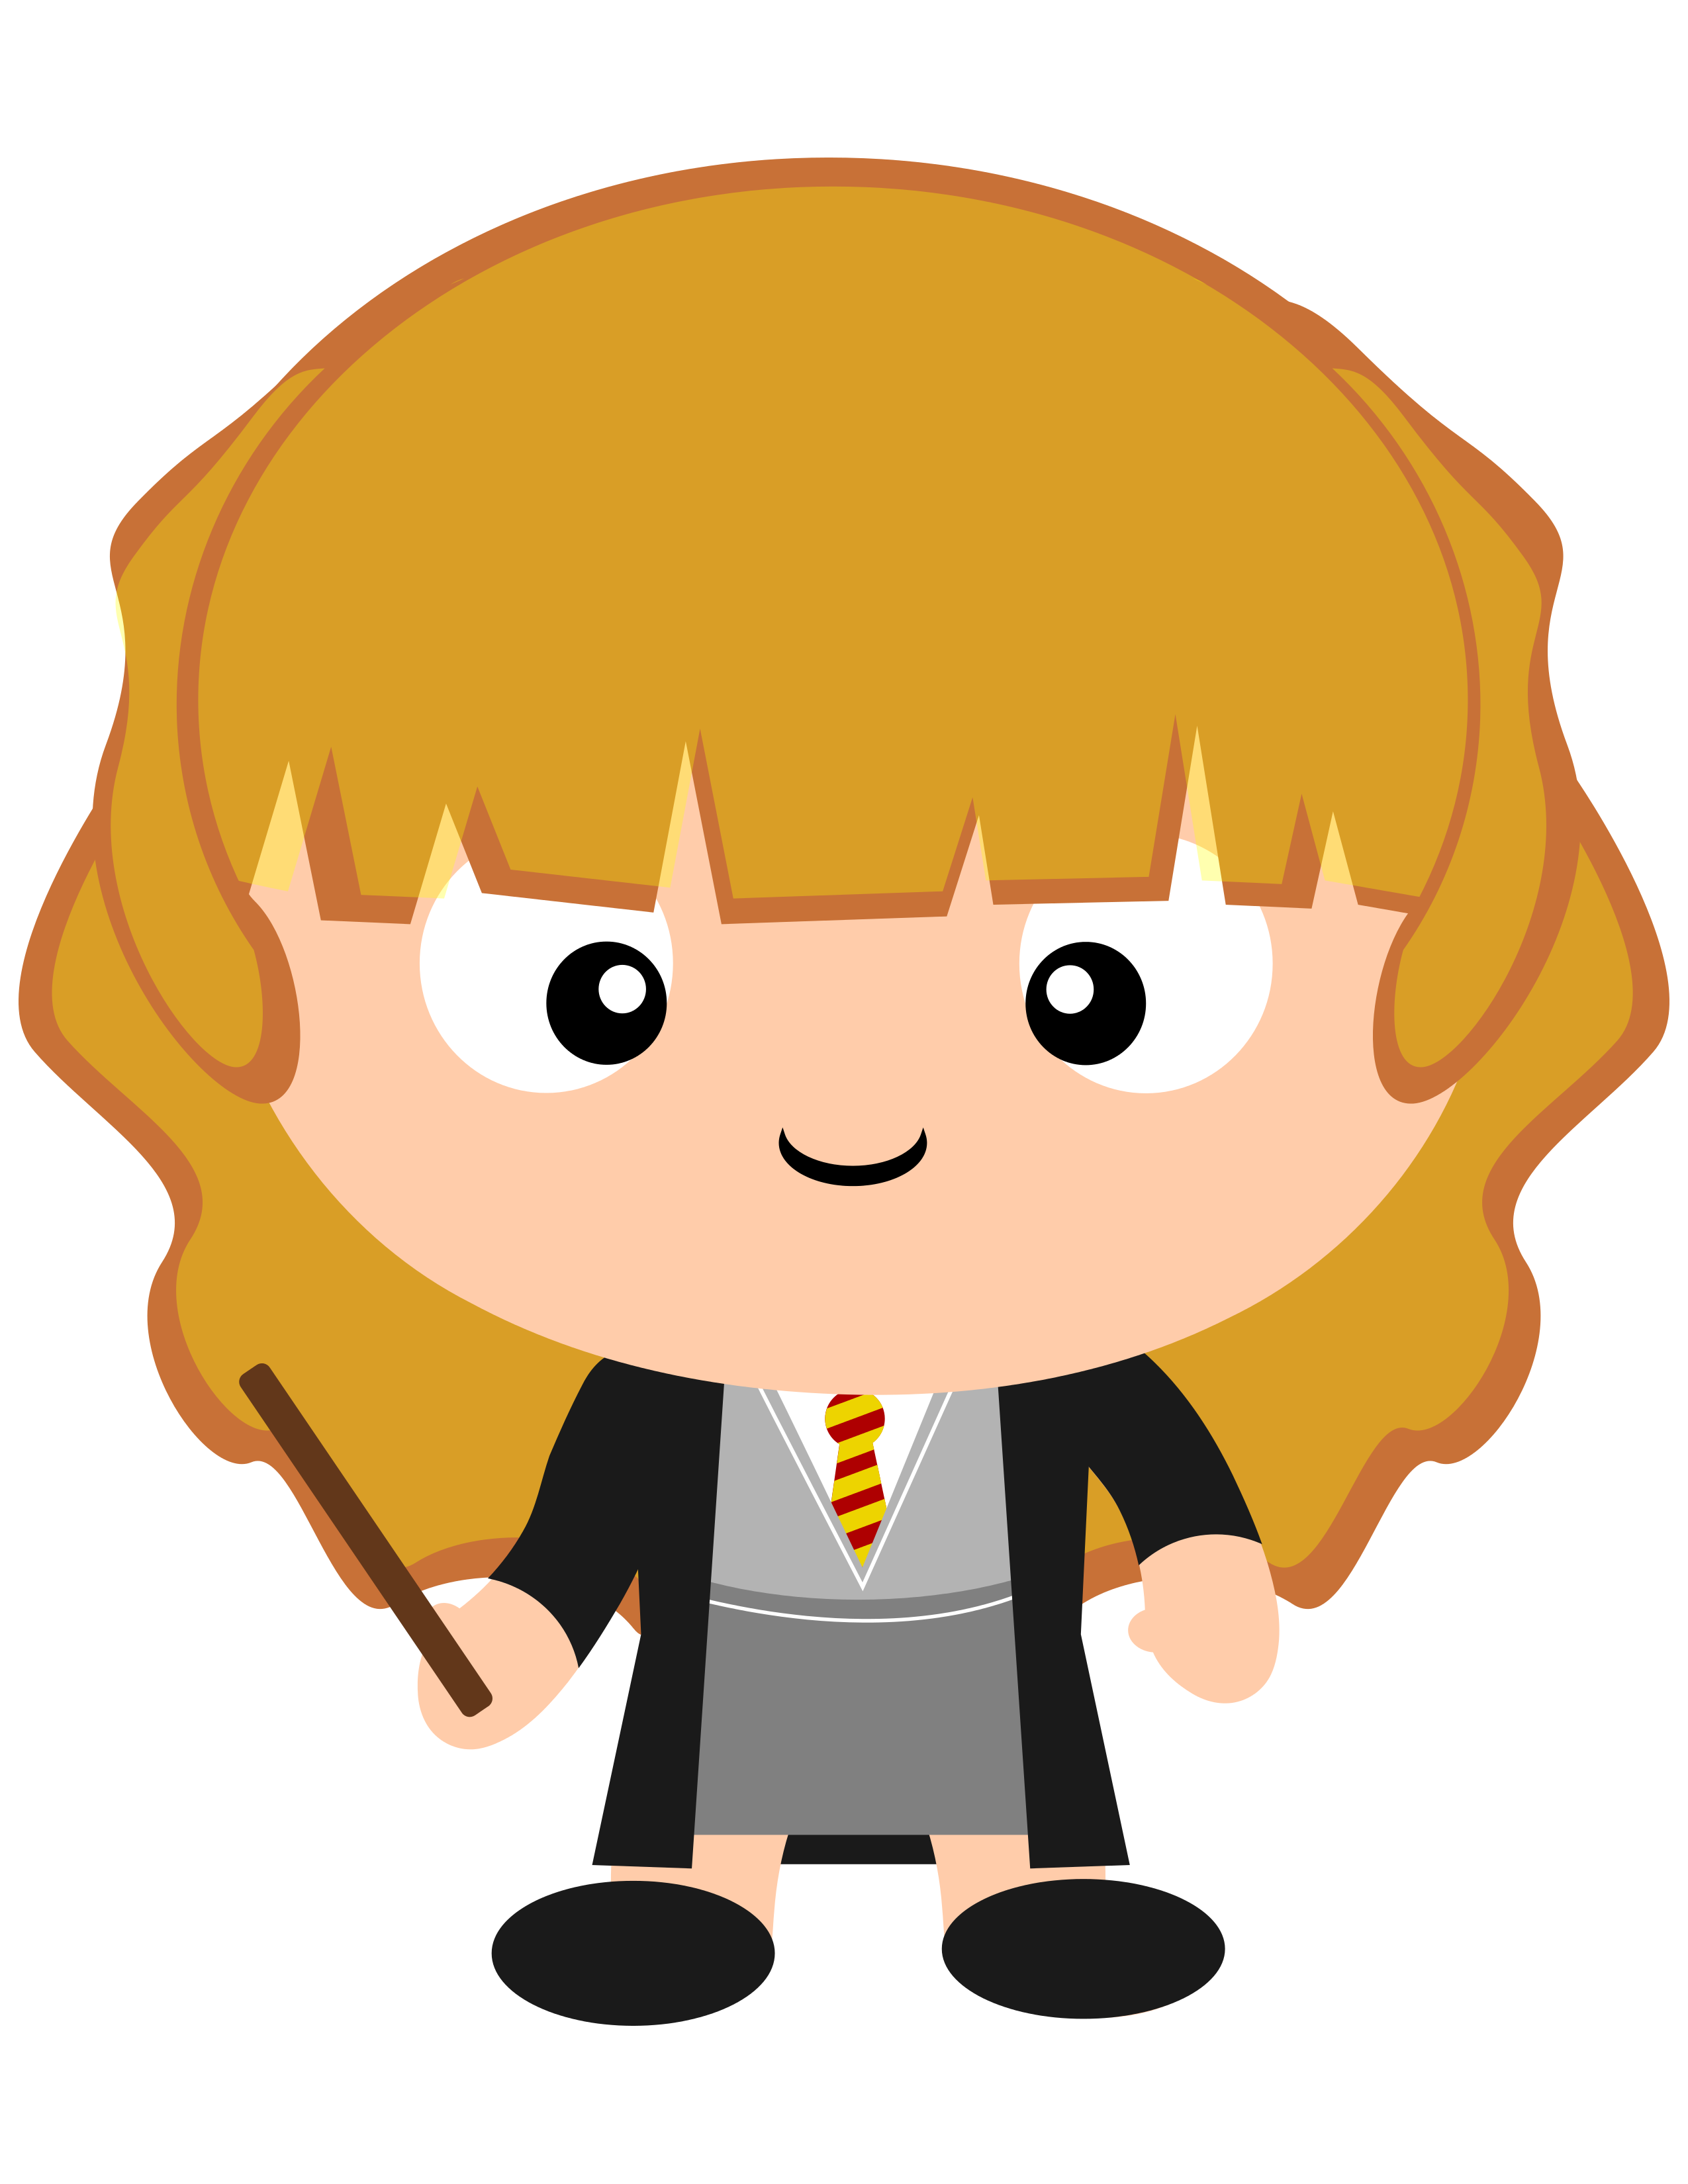 My Favorite Harry Potter Character No My Favorite Character All Of Time Hermione Granger Check Out Our Harry Potter C Risunki Idei Dlya Risunkov Supergeroi